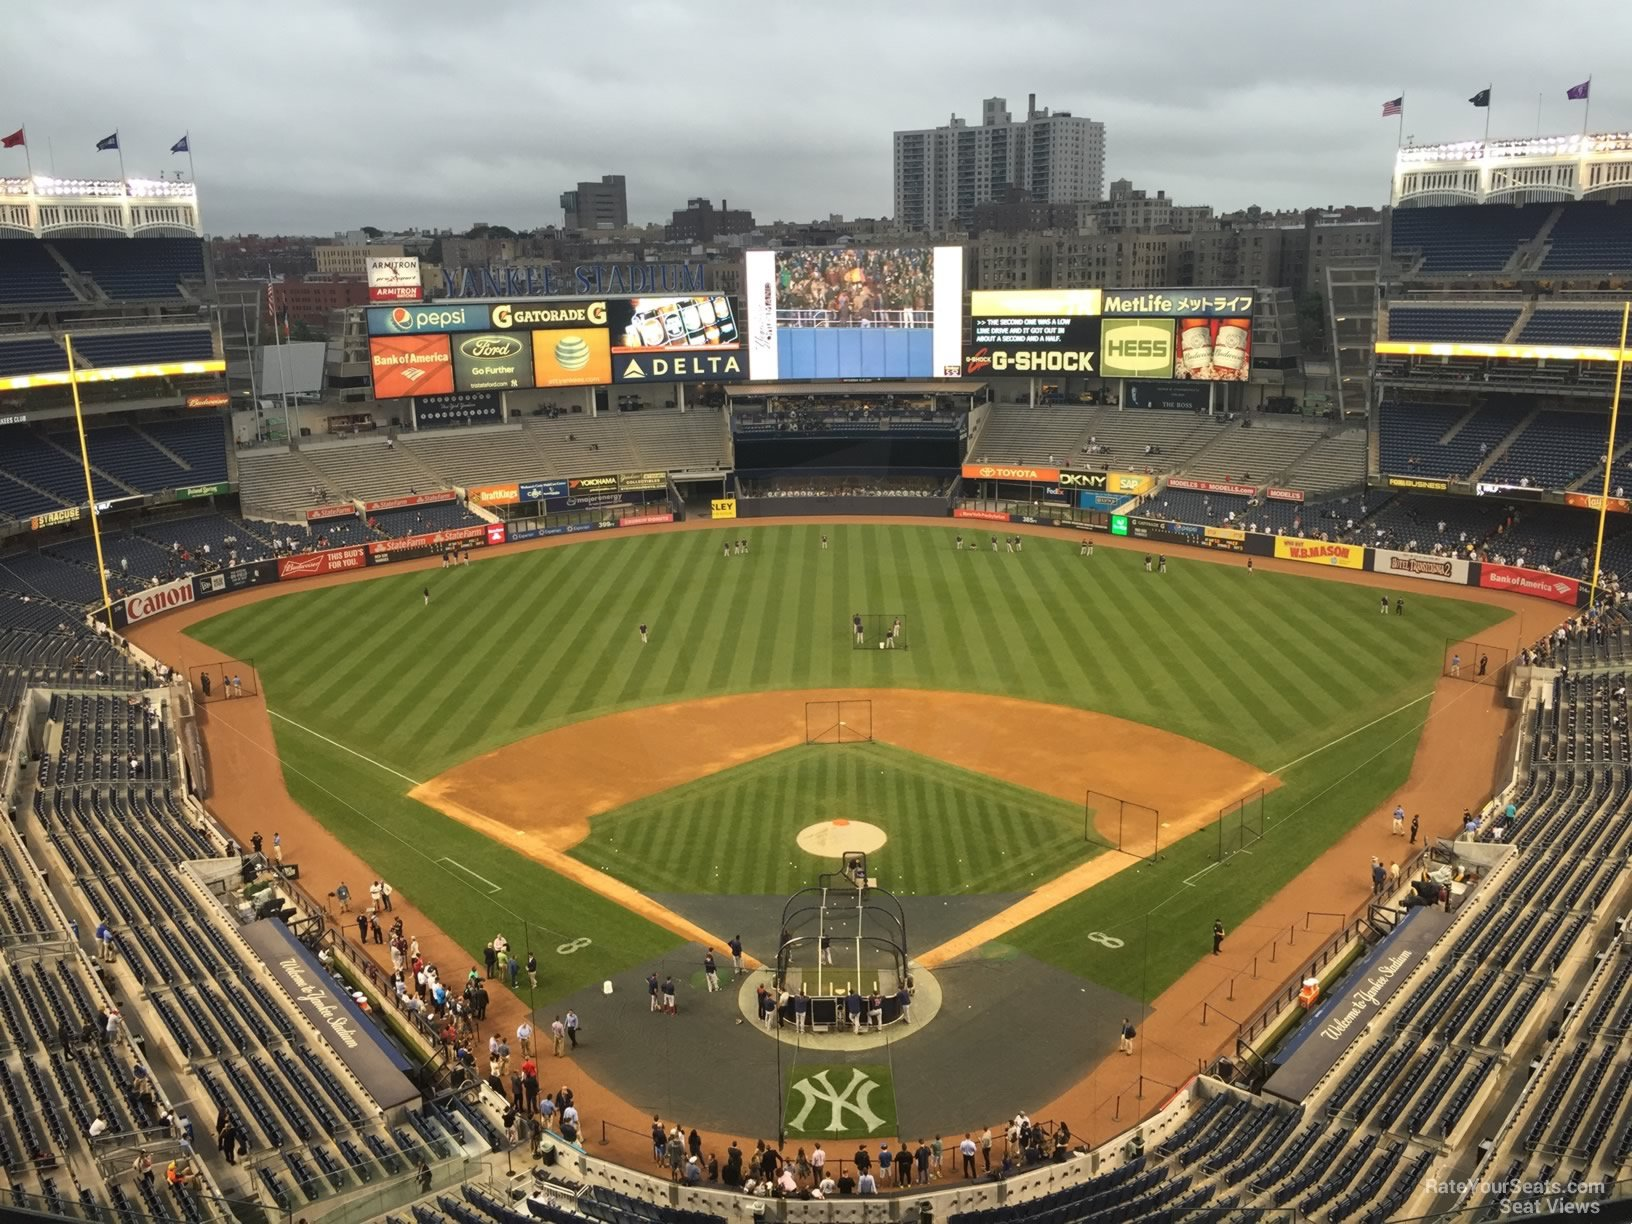 New York Yankees Seat View for Yankee Stadium Section 420B, Row 6